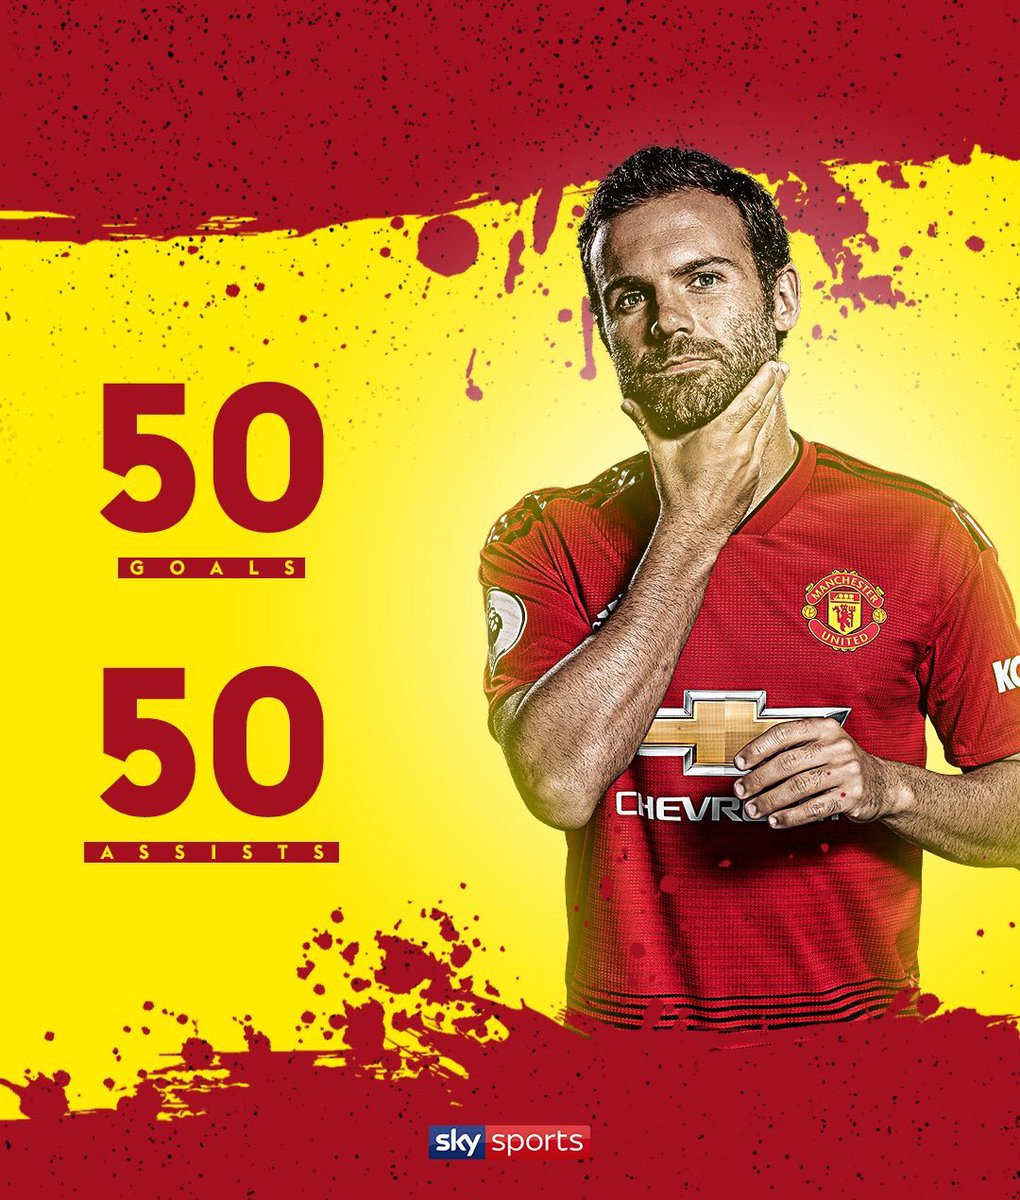 Have said it for a while. De Gea aside. @juanmata8 has been our best player post Sir Alex. Consistent, productive & mostly done out of position. Pleasure to have seen him at United. Hope he stays and makes the trip to Perth #mufc #MUFCinPerth 🇾🇪 https://t.co/SFCwrFXZBY